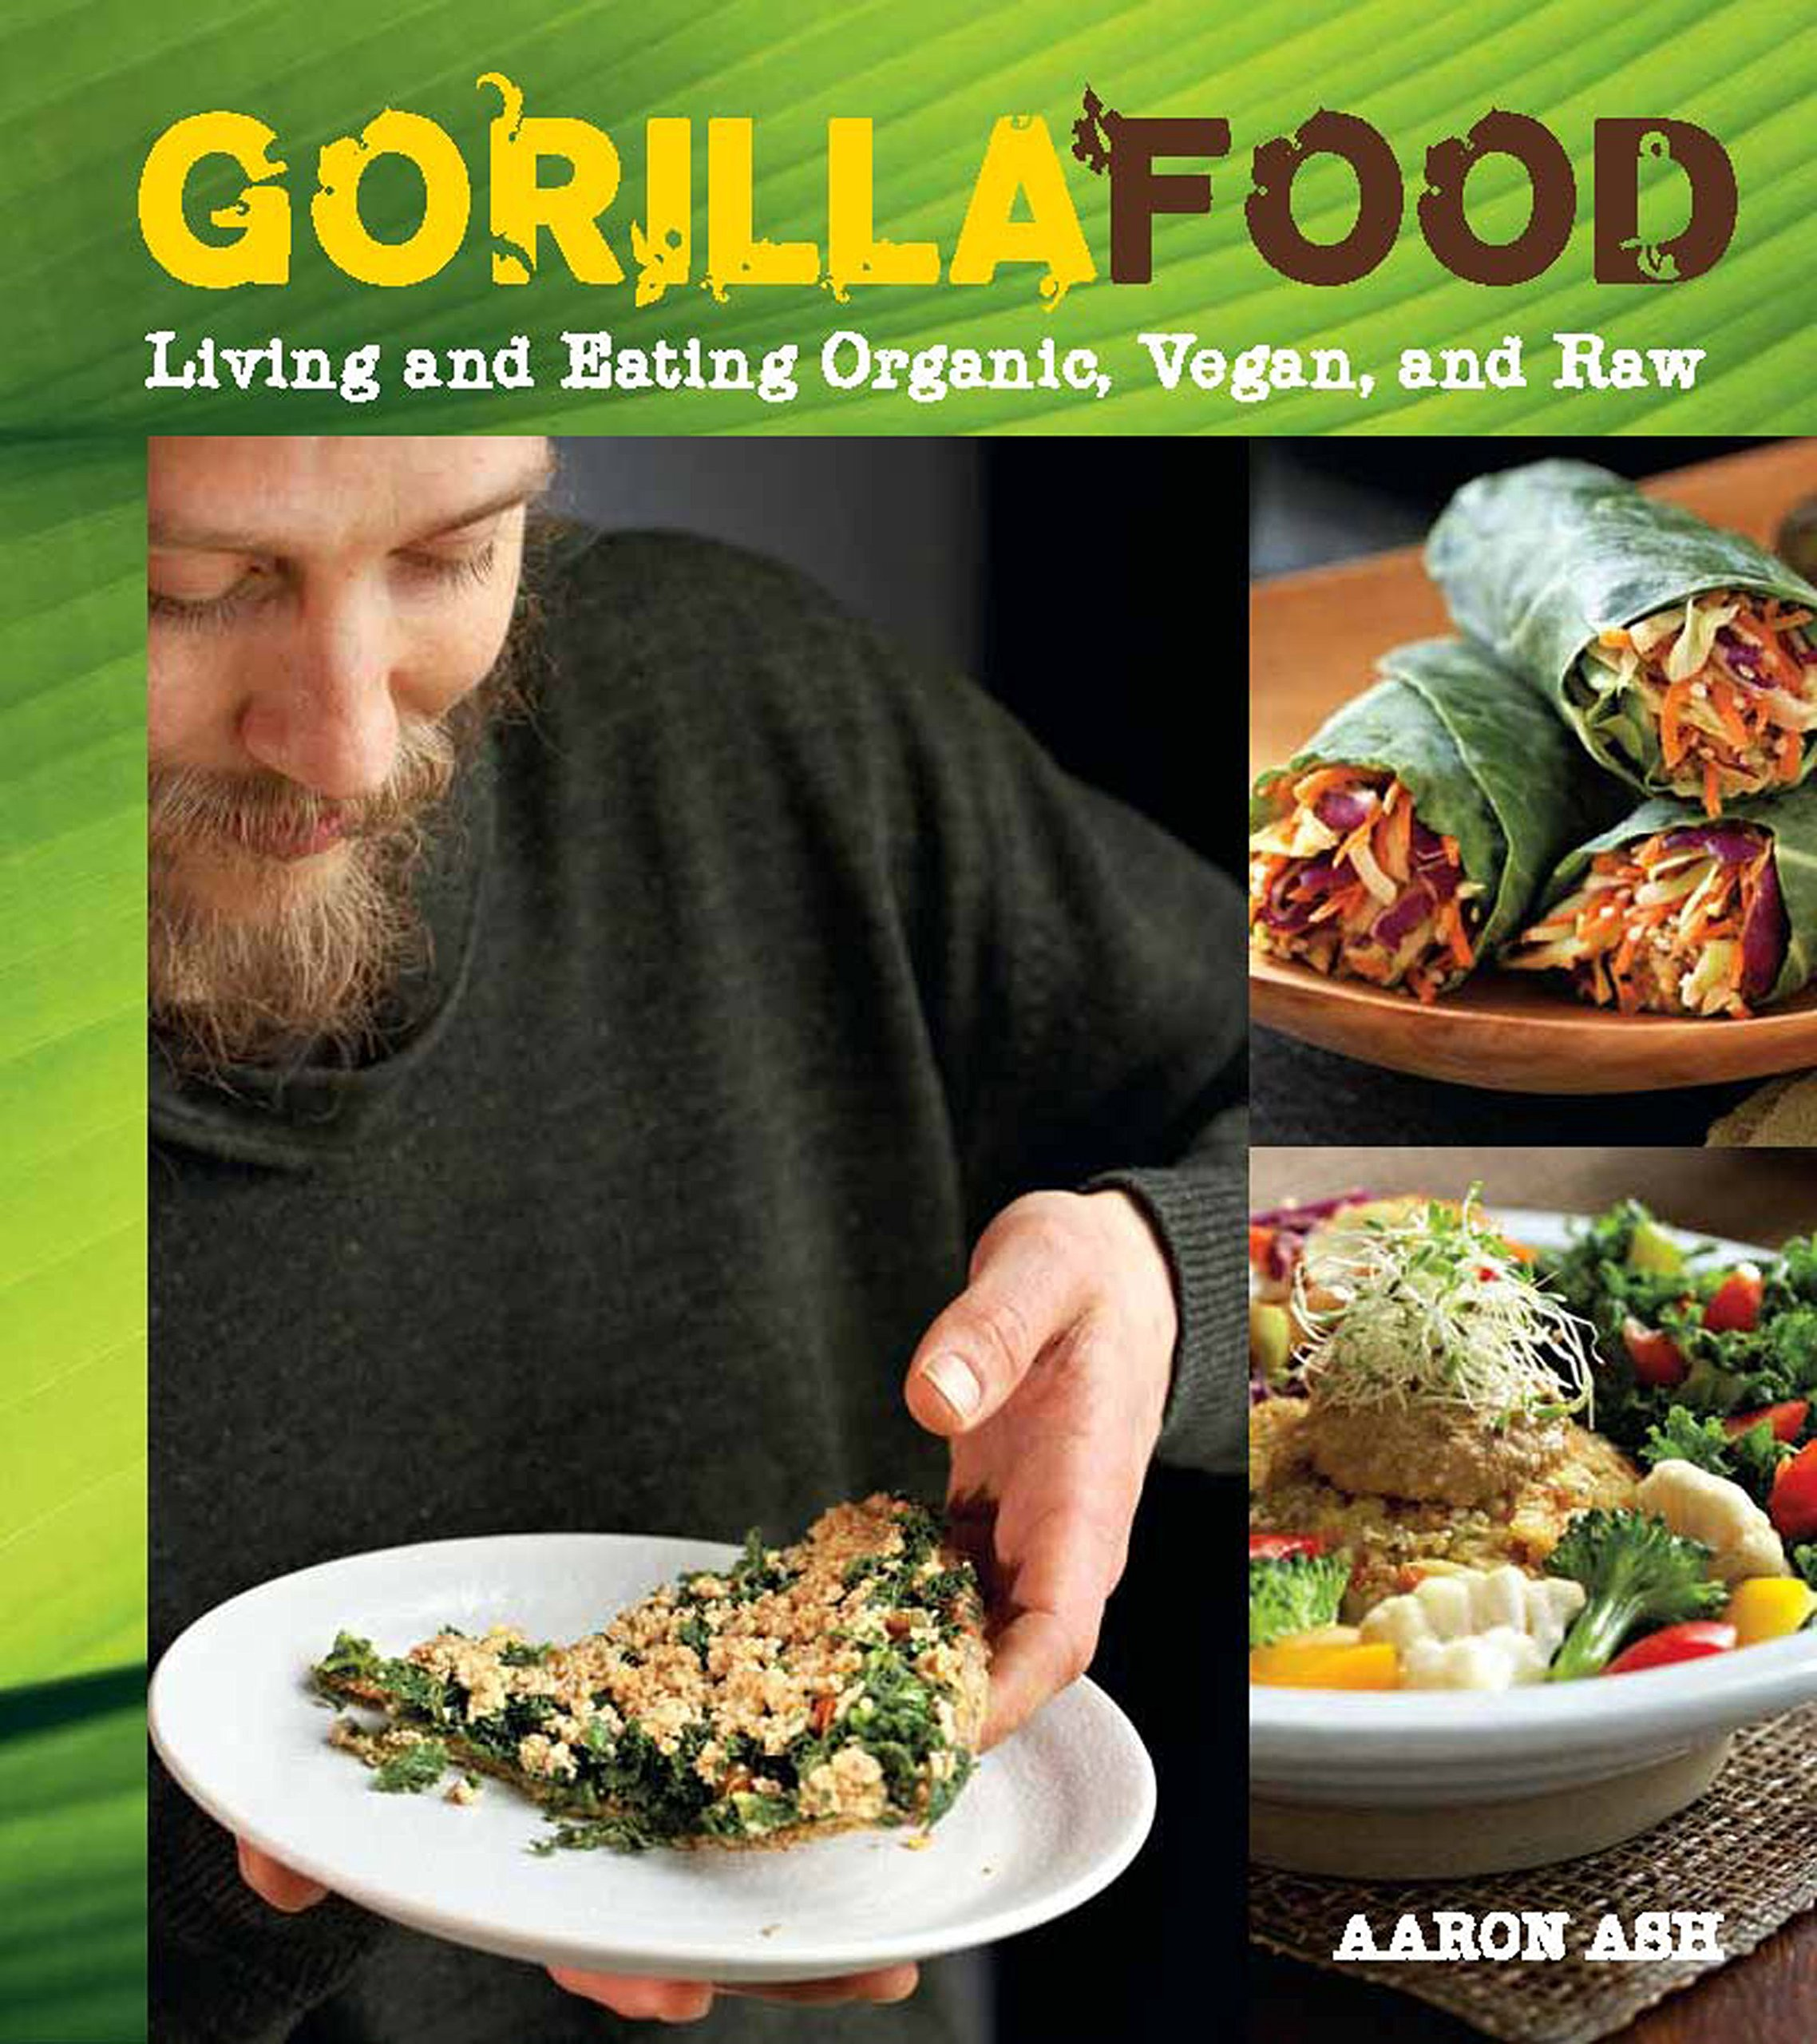 Gorilla food living and eating organic vegan and raw aaron ash gorilla food living and eating organic vegan and raw aaron ash 9781551524702 amazon books forumfinder